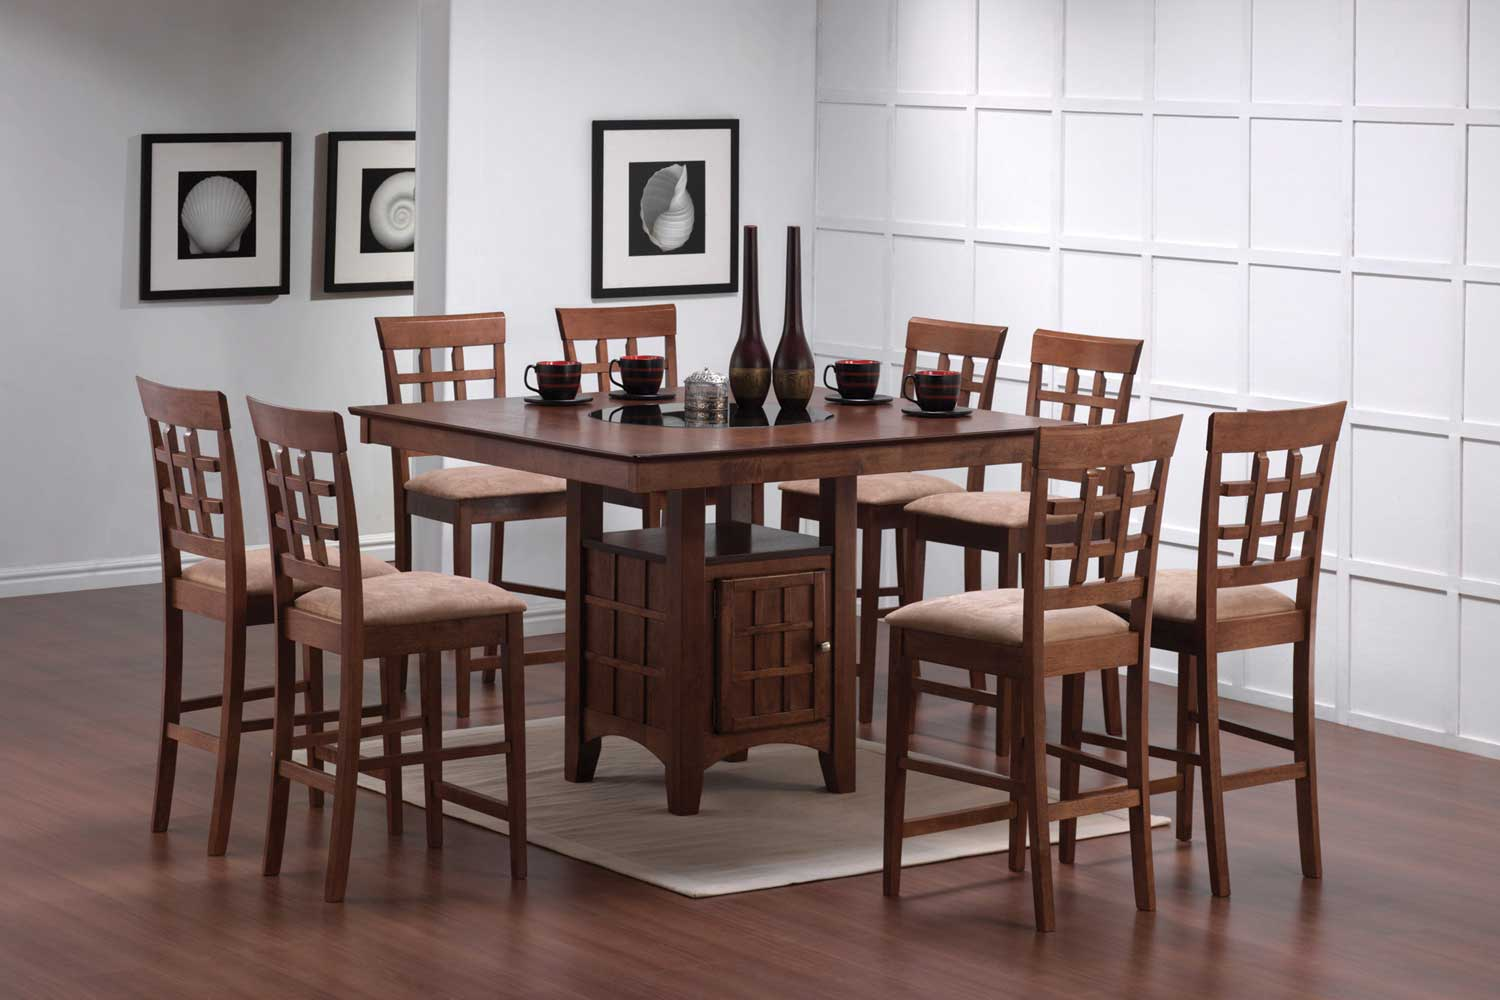 Coaster Mix and Match Counter Height Dining Table Set with Storage Pedestal Base - Walnut